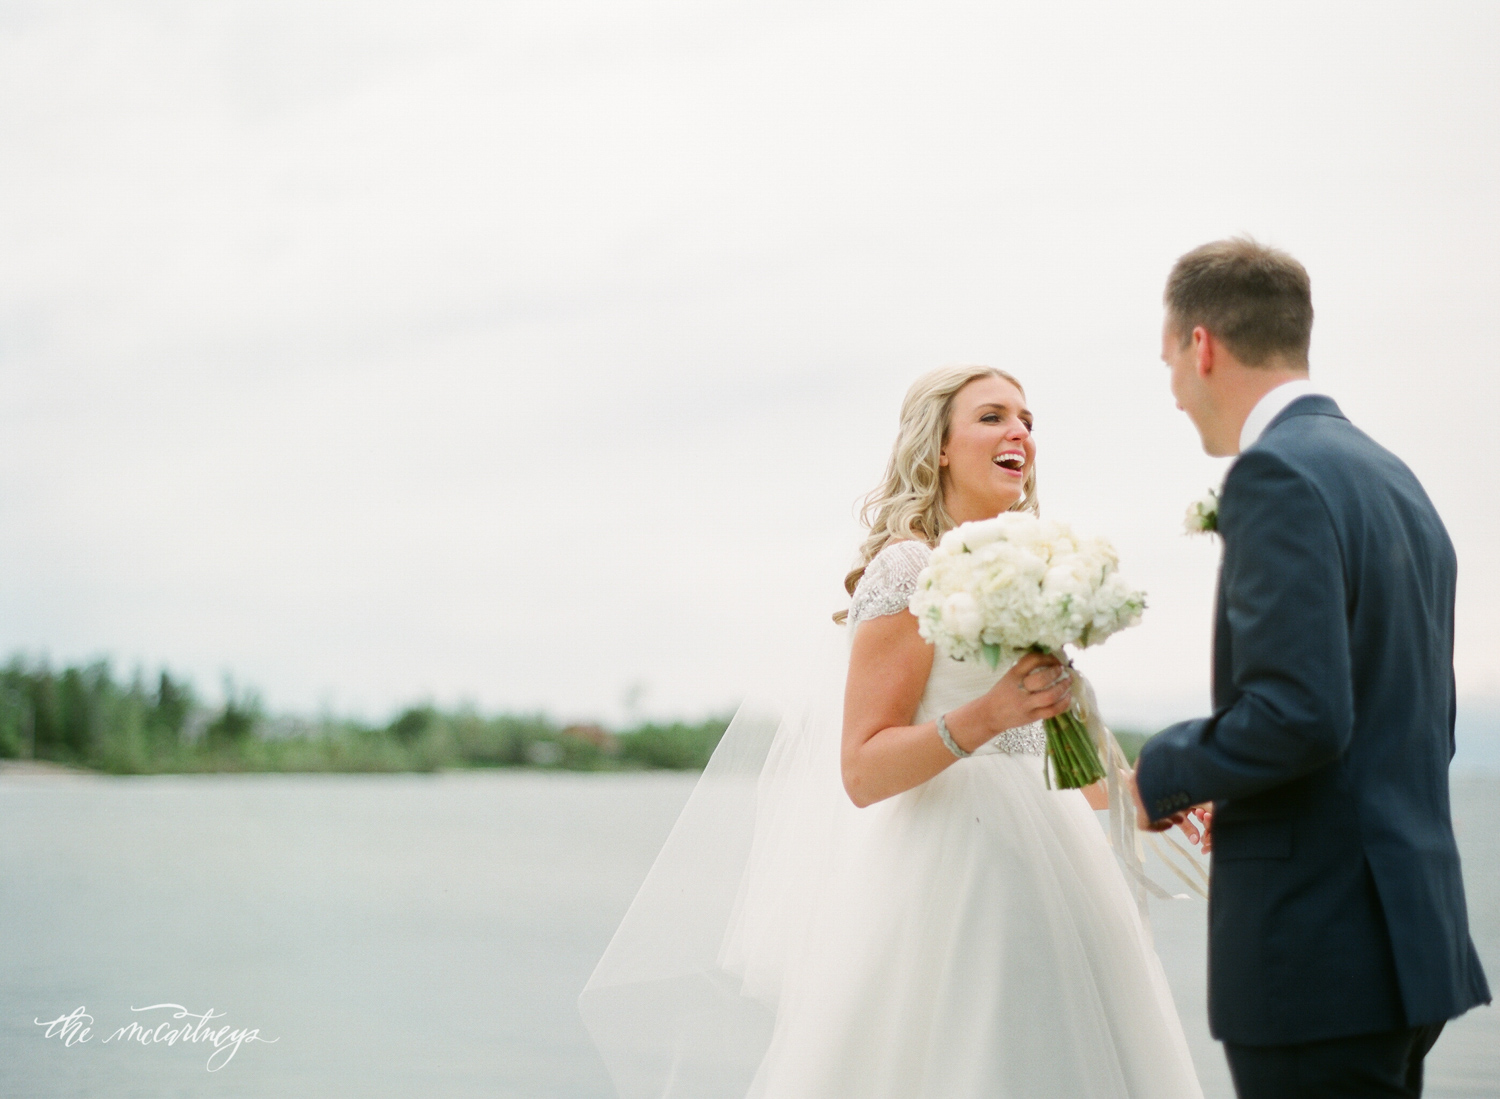 Brett-Dorrian-Minneapolis-Destination-Wedding-Makeup-and-Hair-Artist